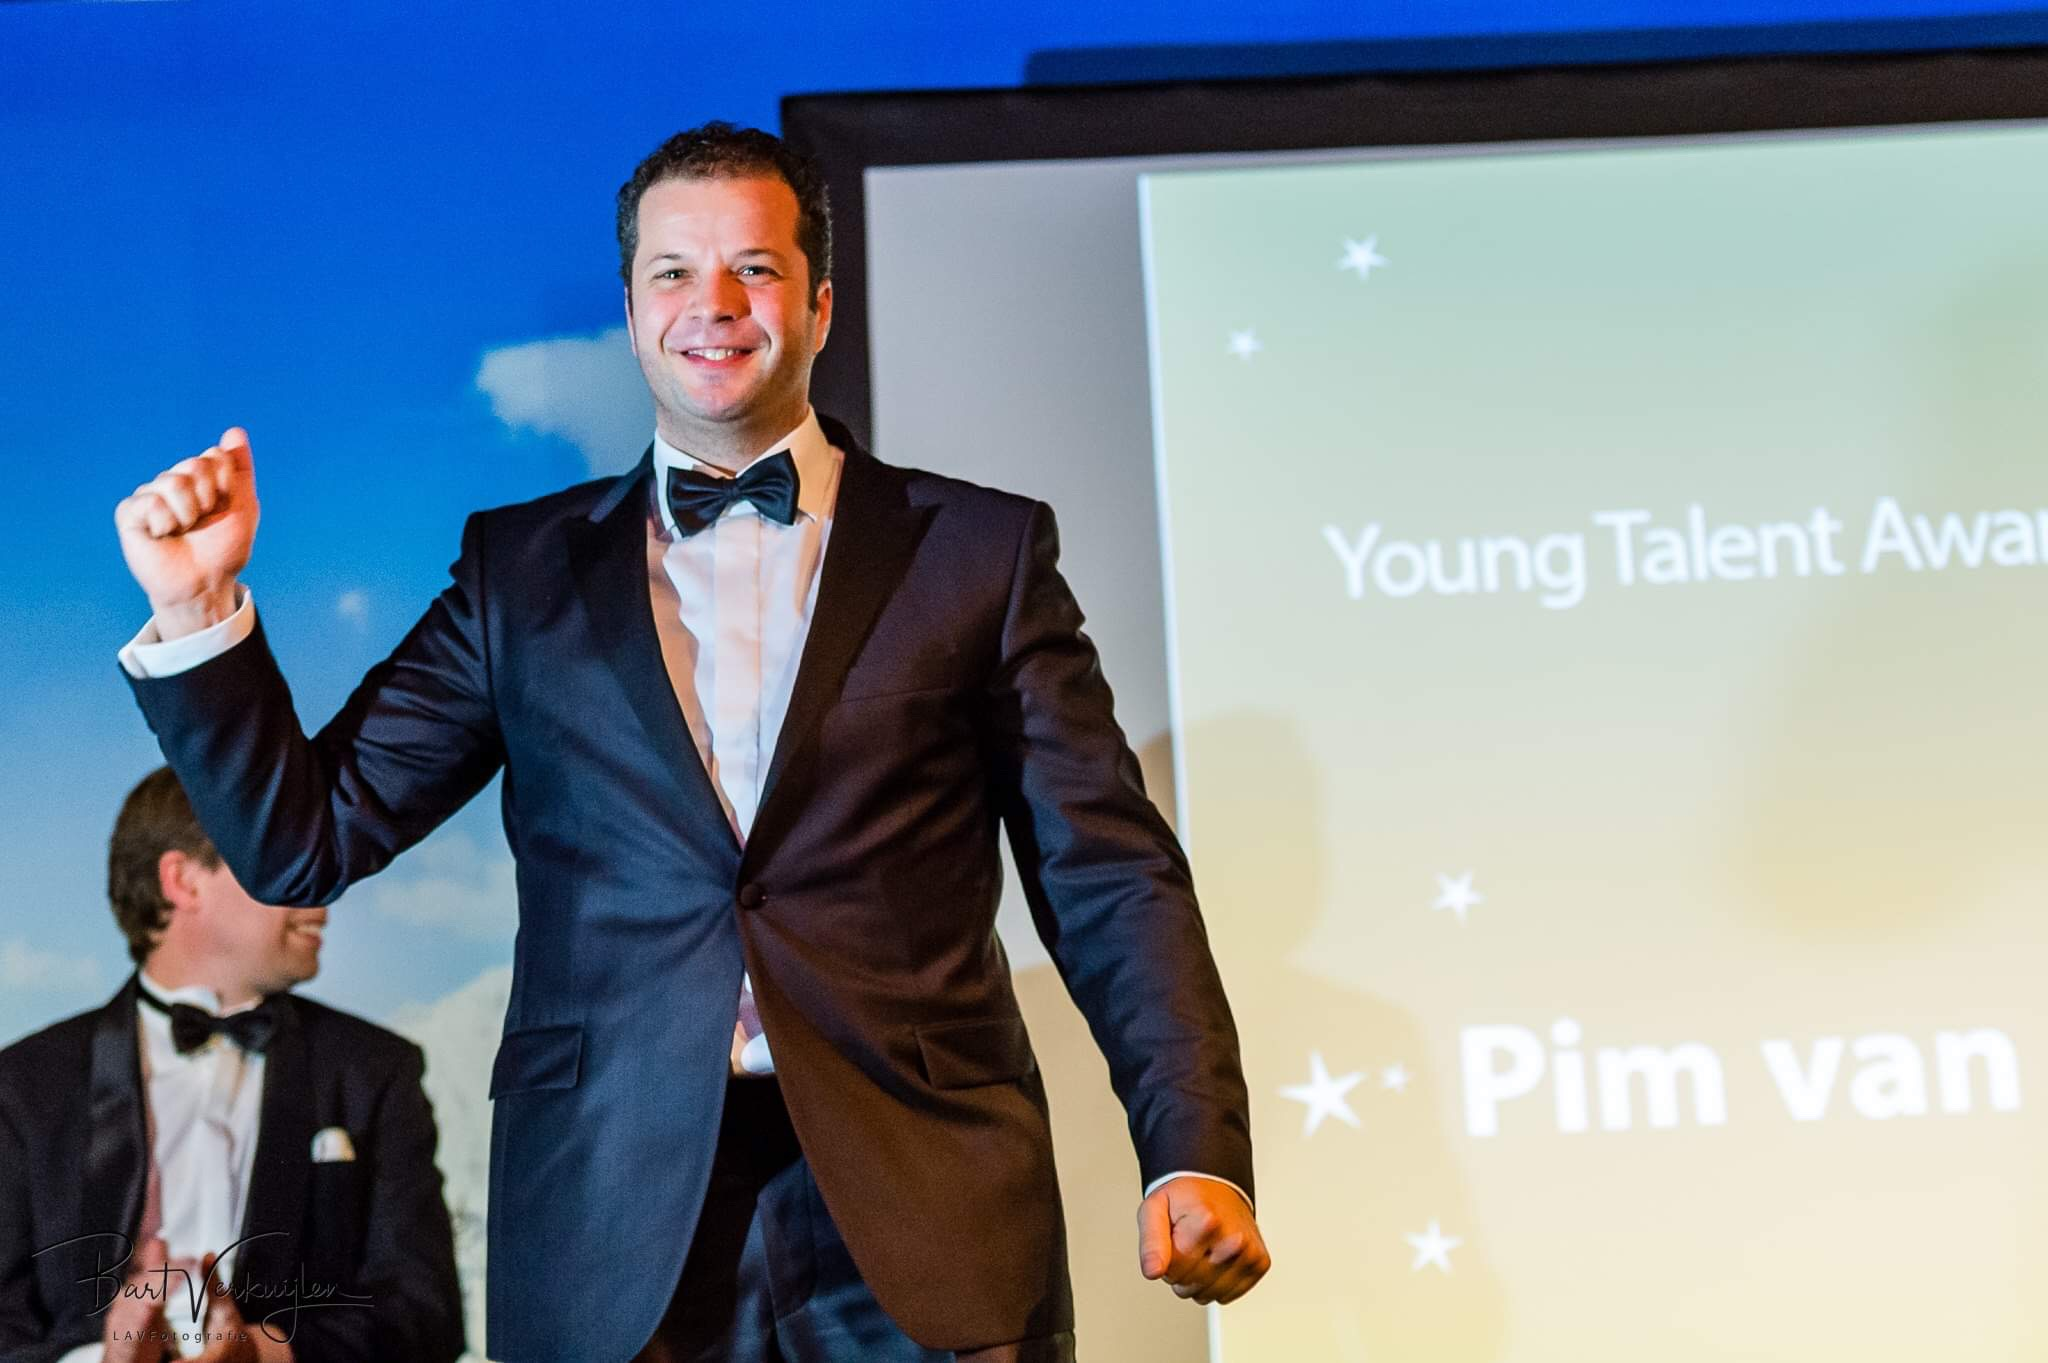 Young Talent Award